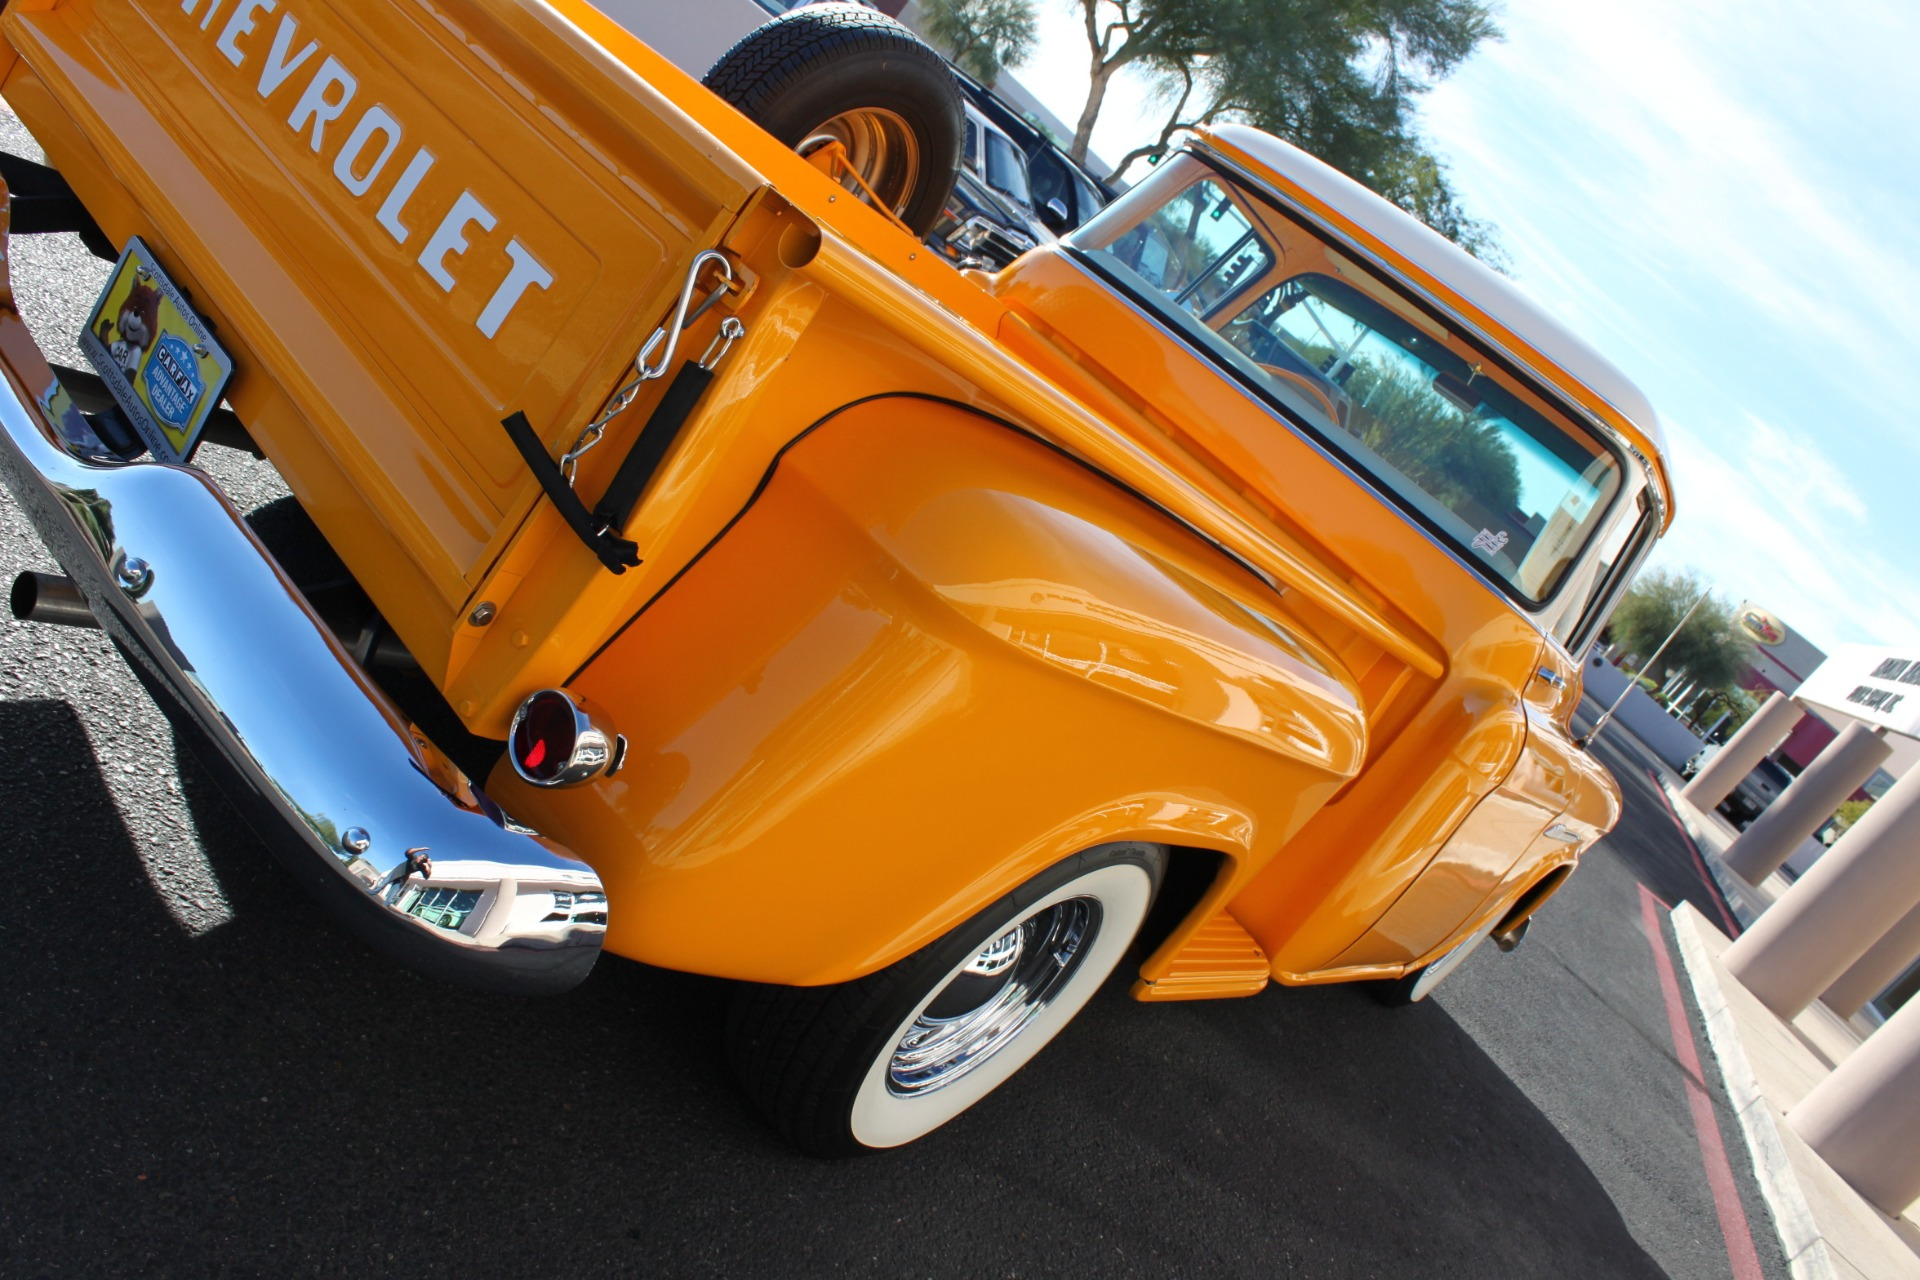 Used-1955-Chevrolet-3100-Pickup-Truck-Acura